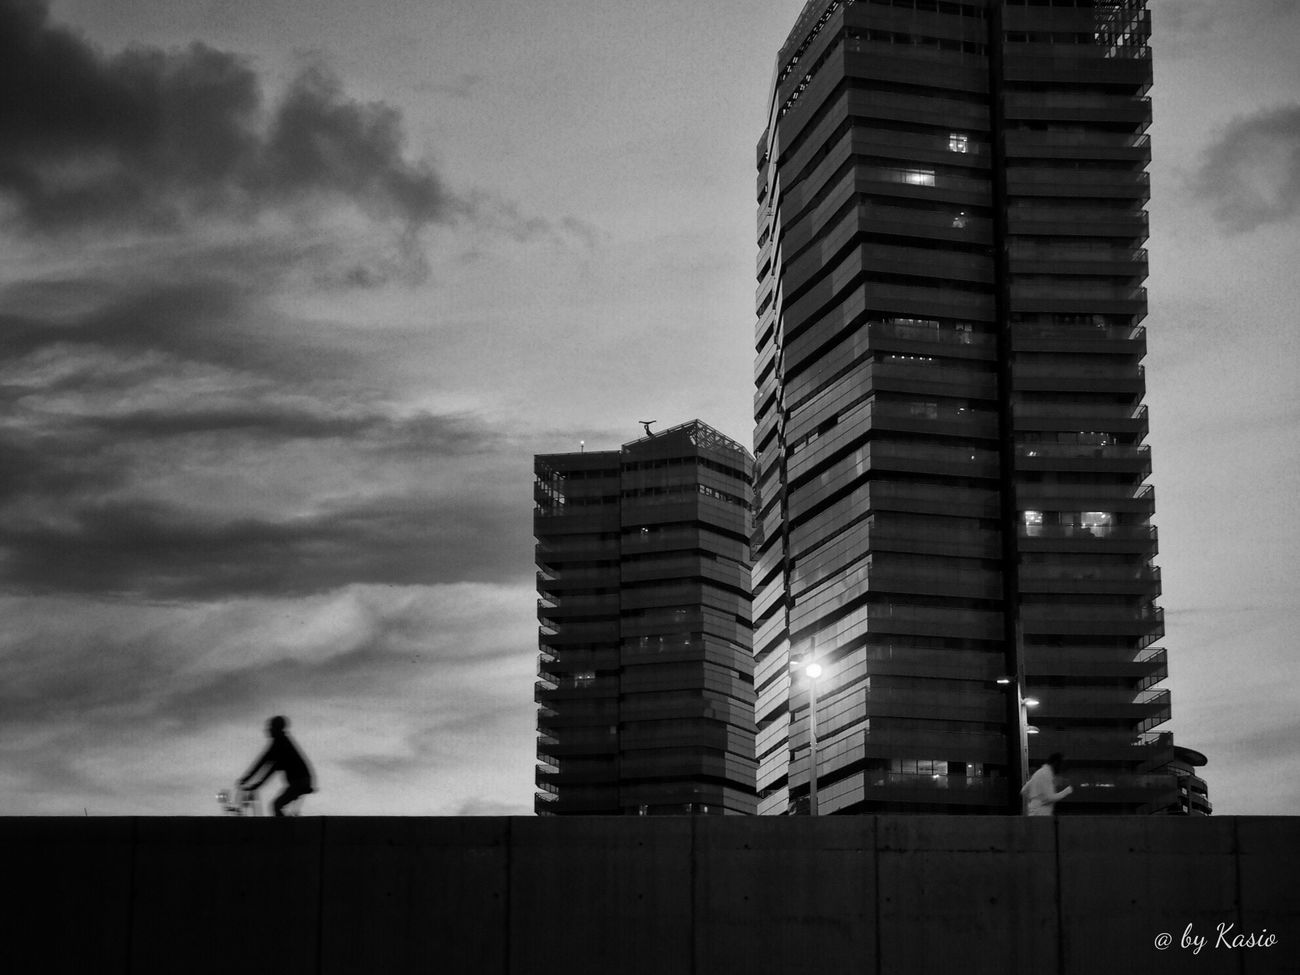 EyeEm Best Edits EyeEm Best Shots Illuminated City Street Sky_collection City Built Structure Capture The Moment Architecture Eye4photography  BW Collection Bw Photography